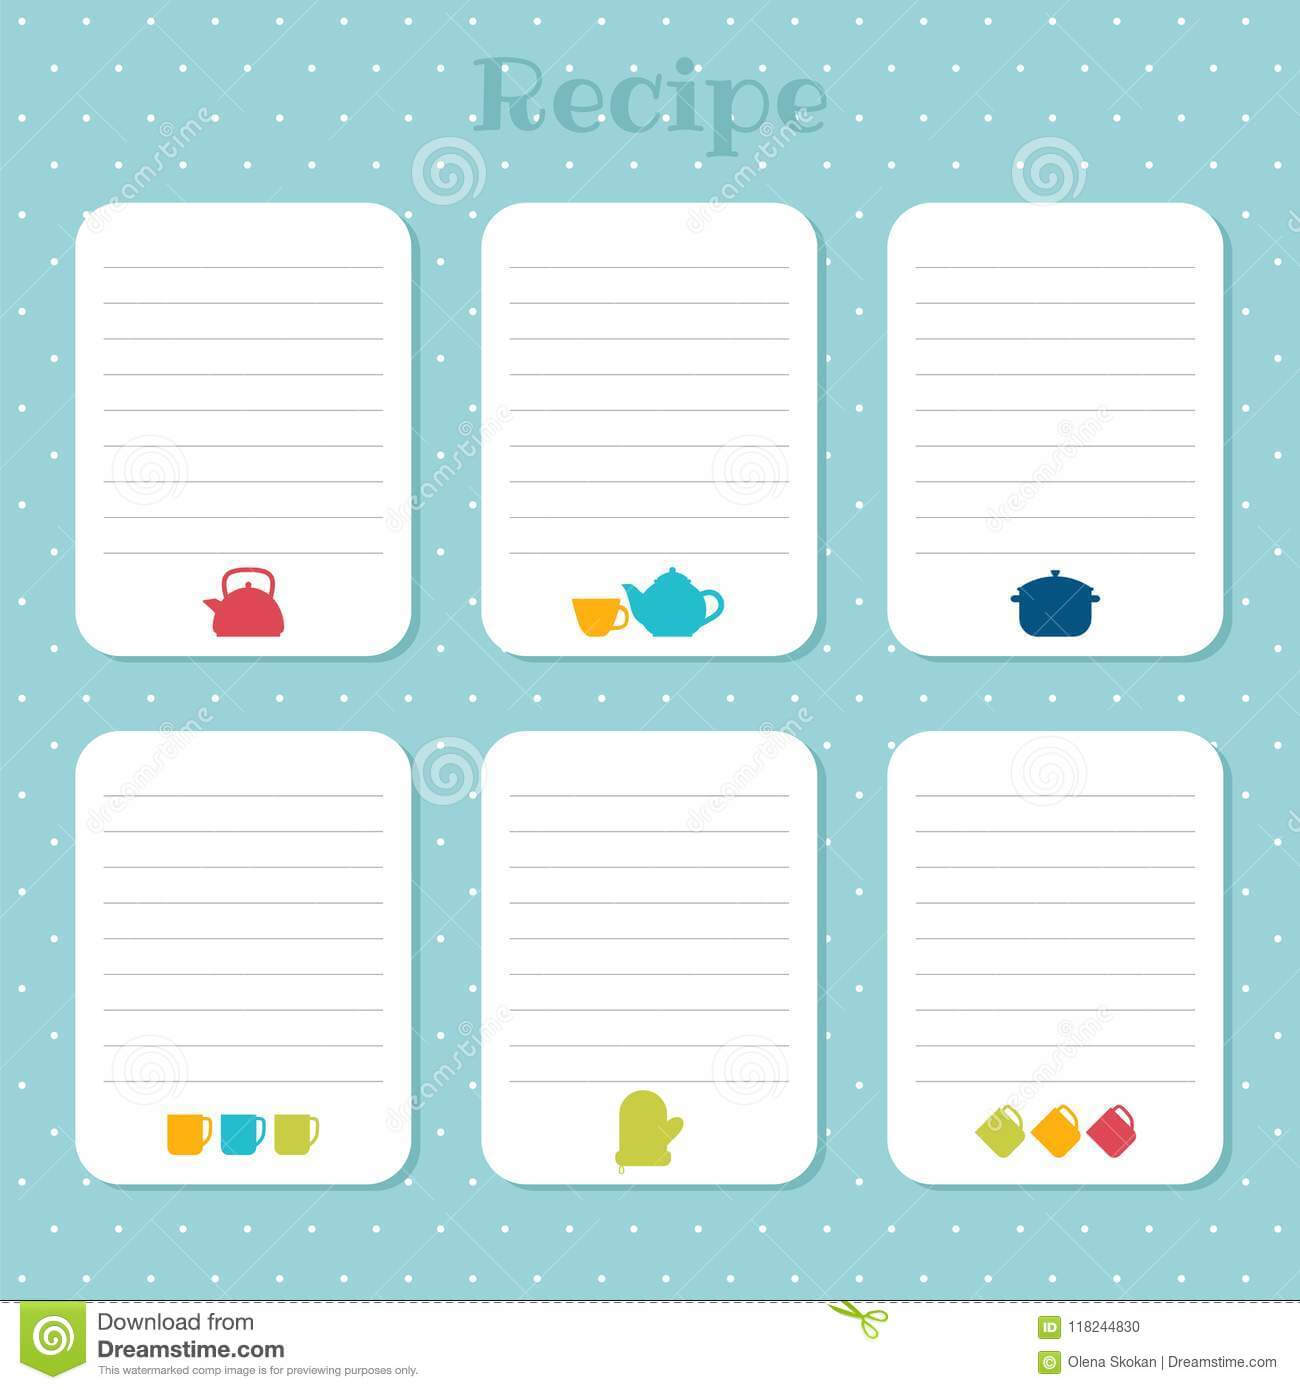 Recipe Cards Set. Cooking Card Templates. For Restaurant regarding Restaurant Recipe Card Template